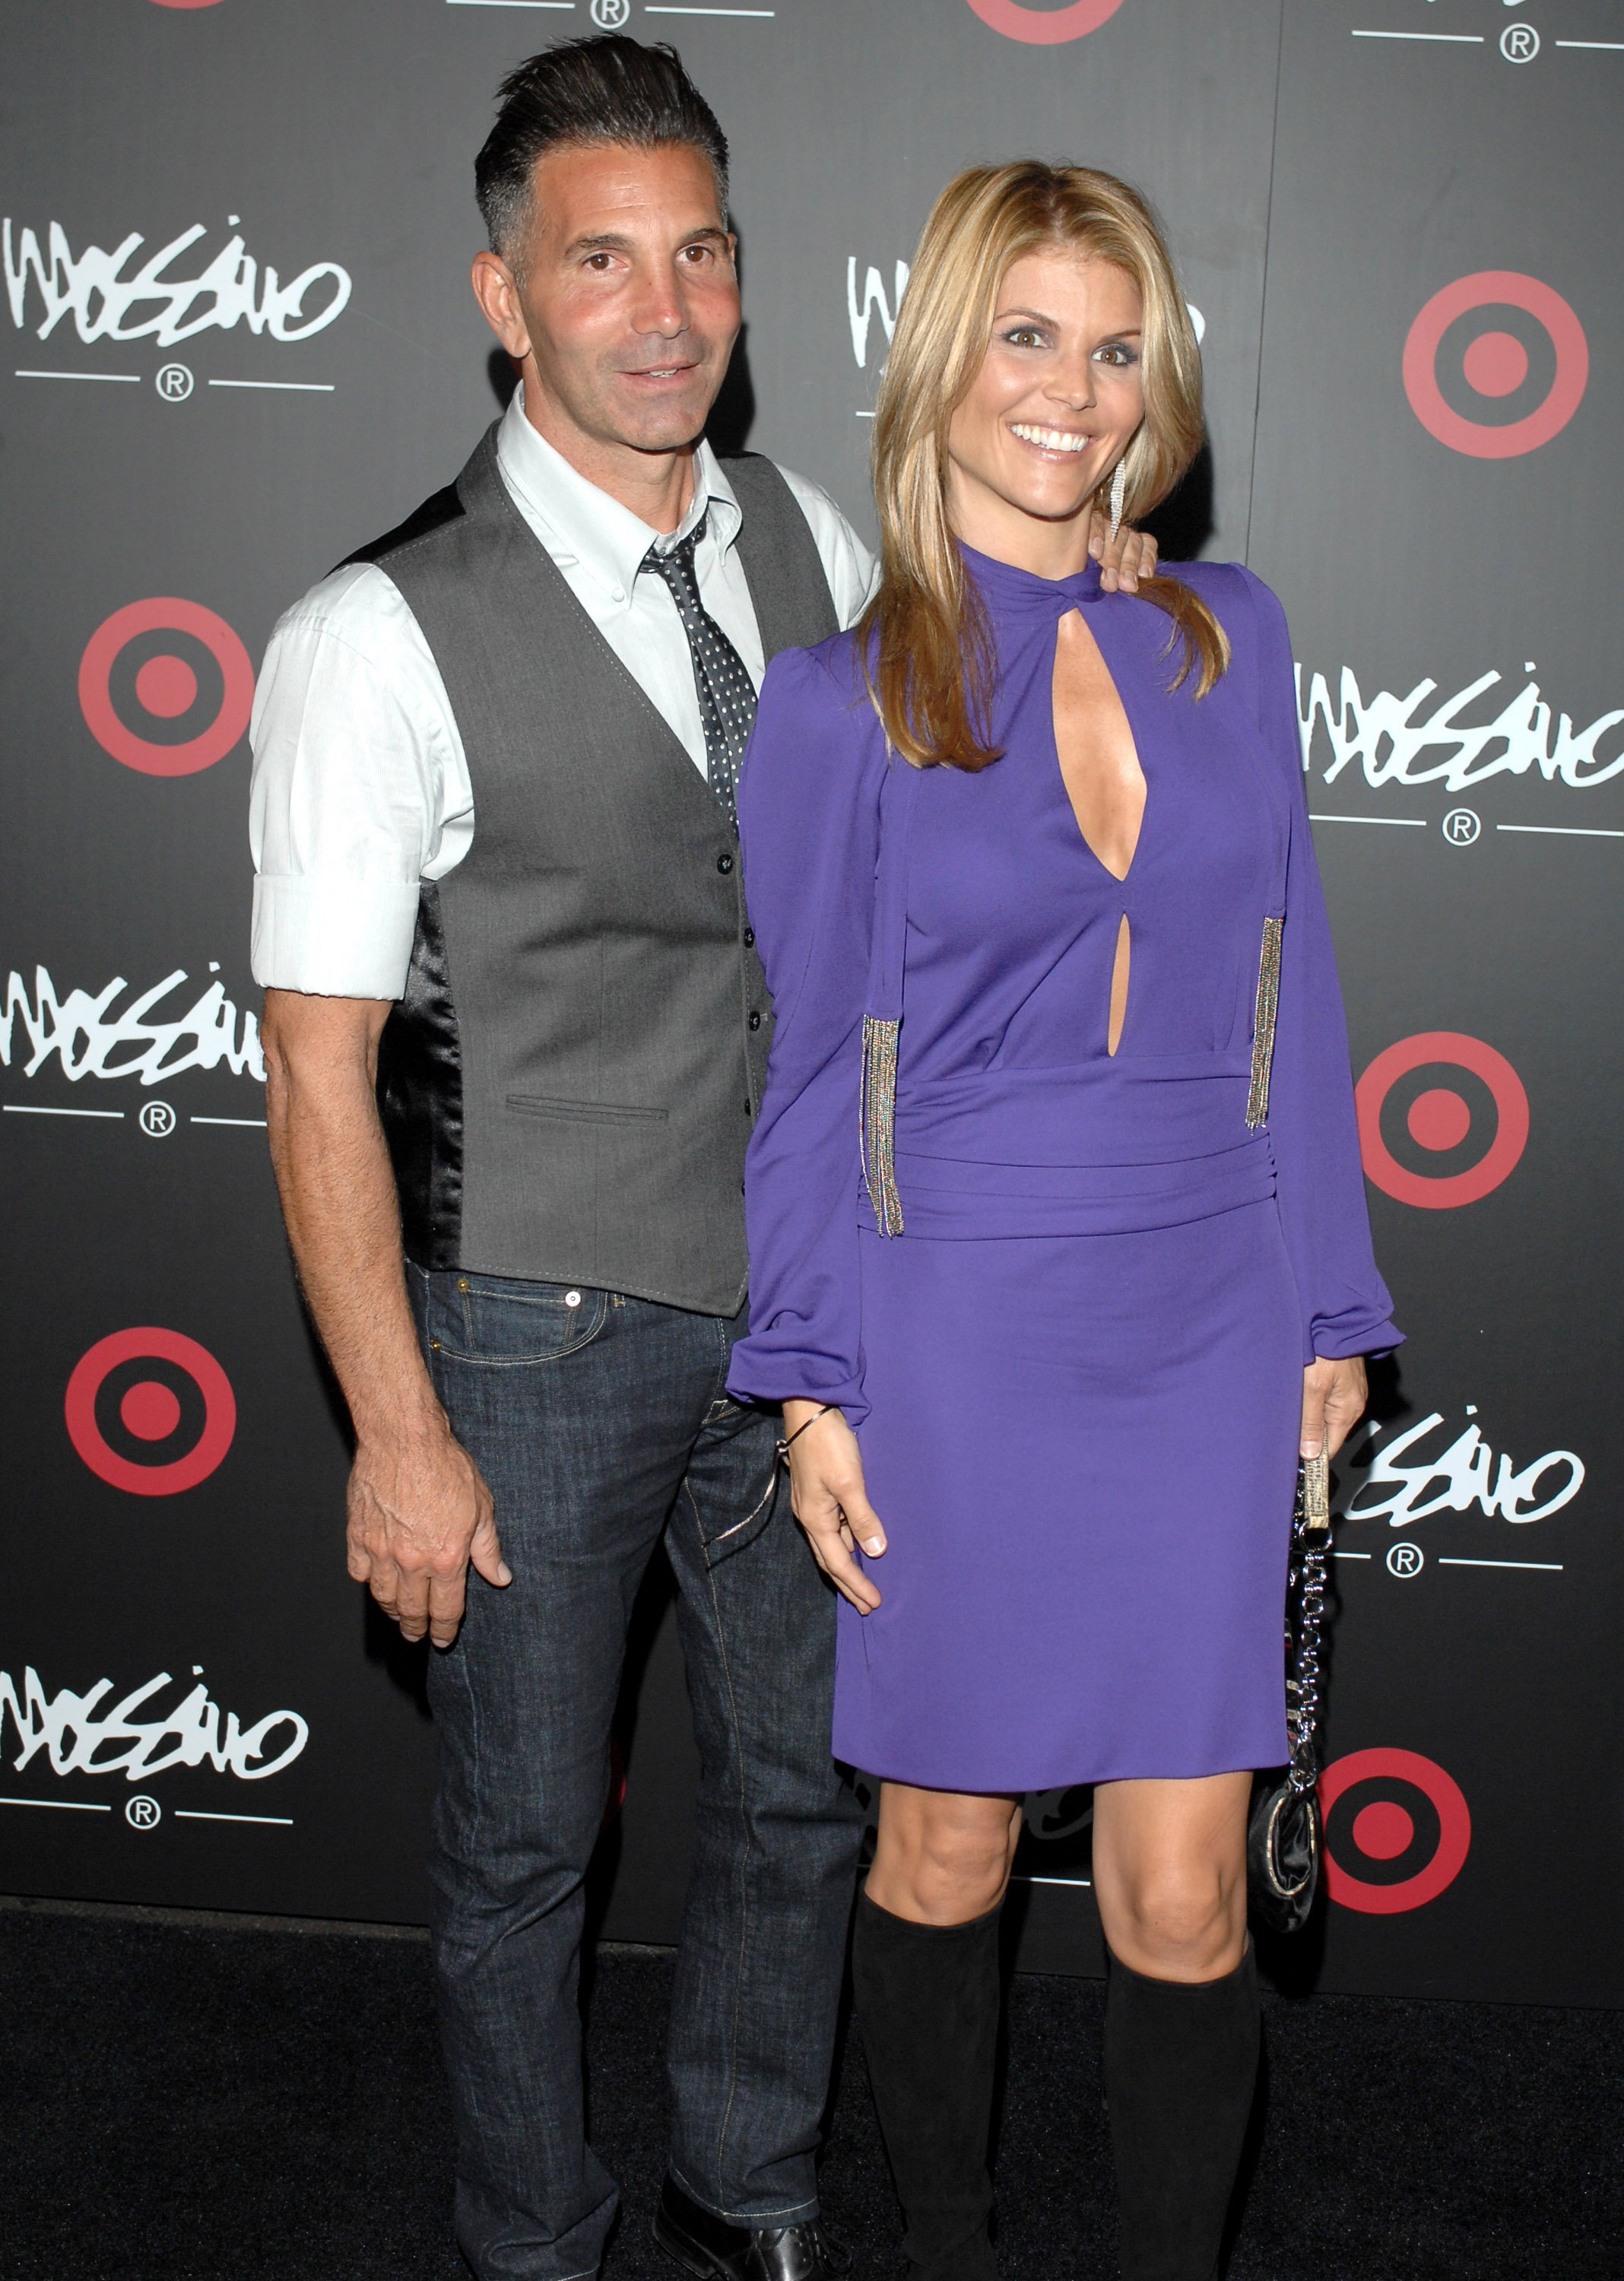 Lori Loughlin and her husband Mossimo Giannulli attends LA Fashion Week Party in October 2006 | Photo: Getty Images